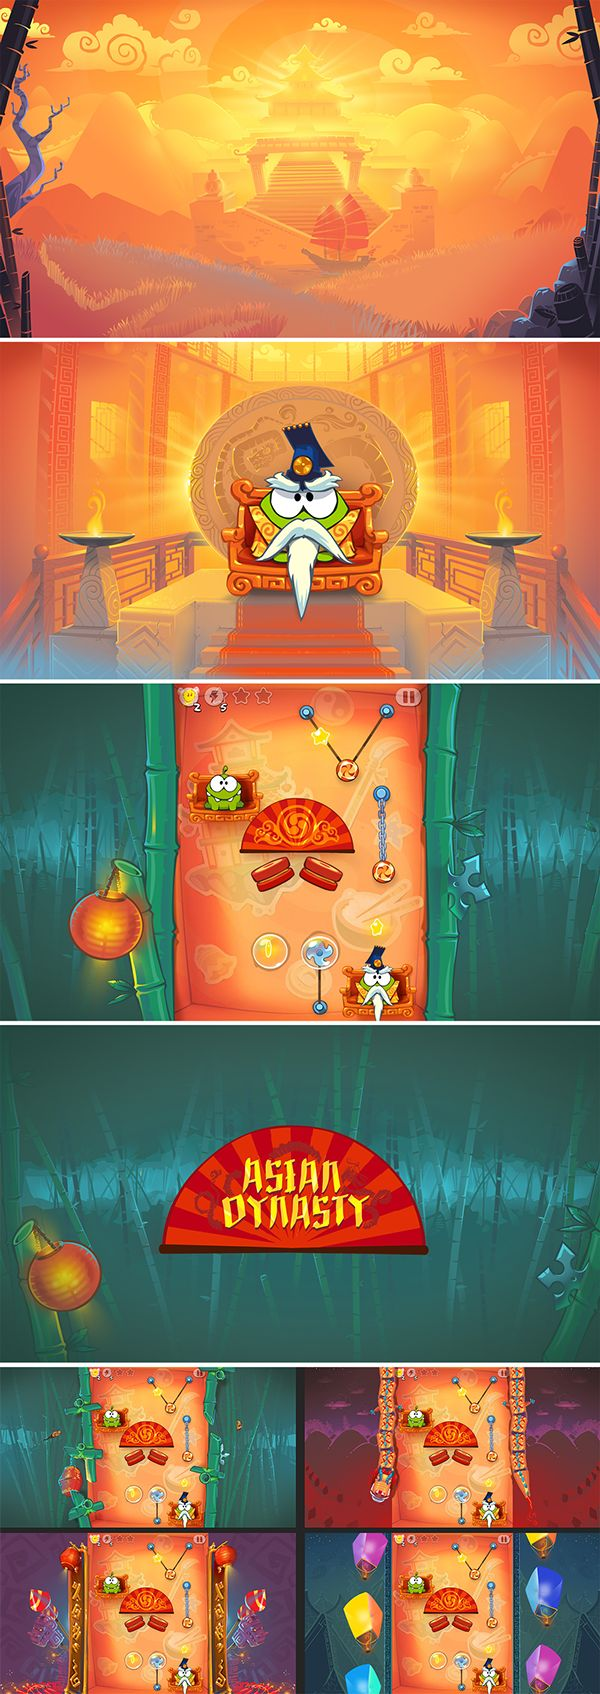 Game art on Behance ★ Find more at http://www.pinterest.com/competing